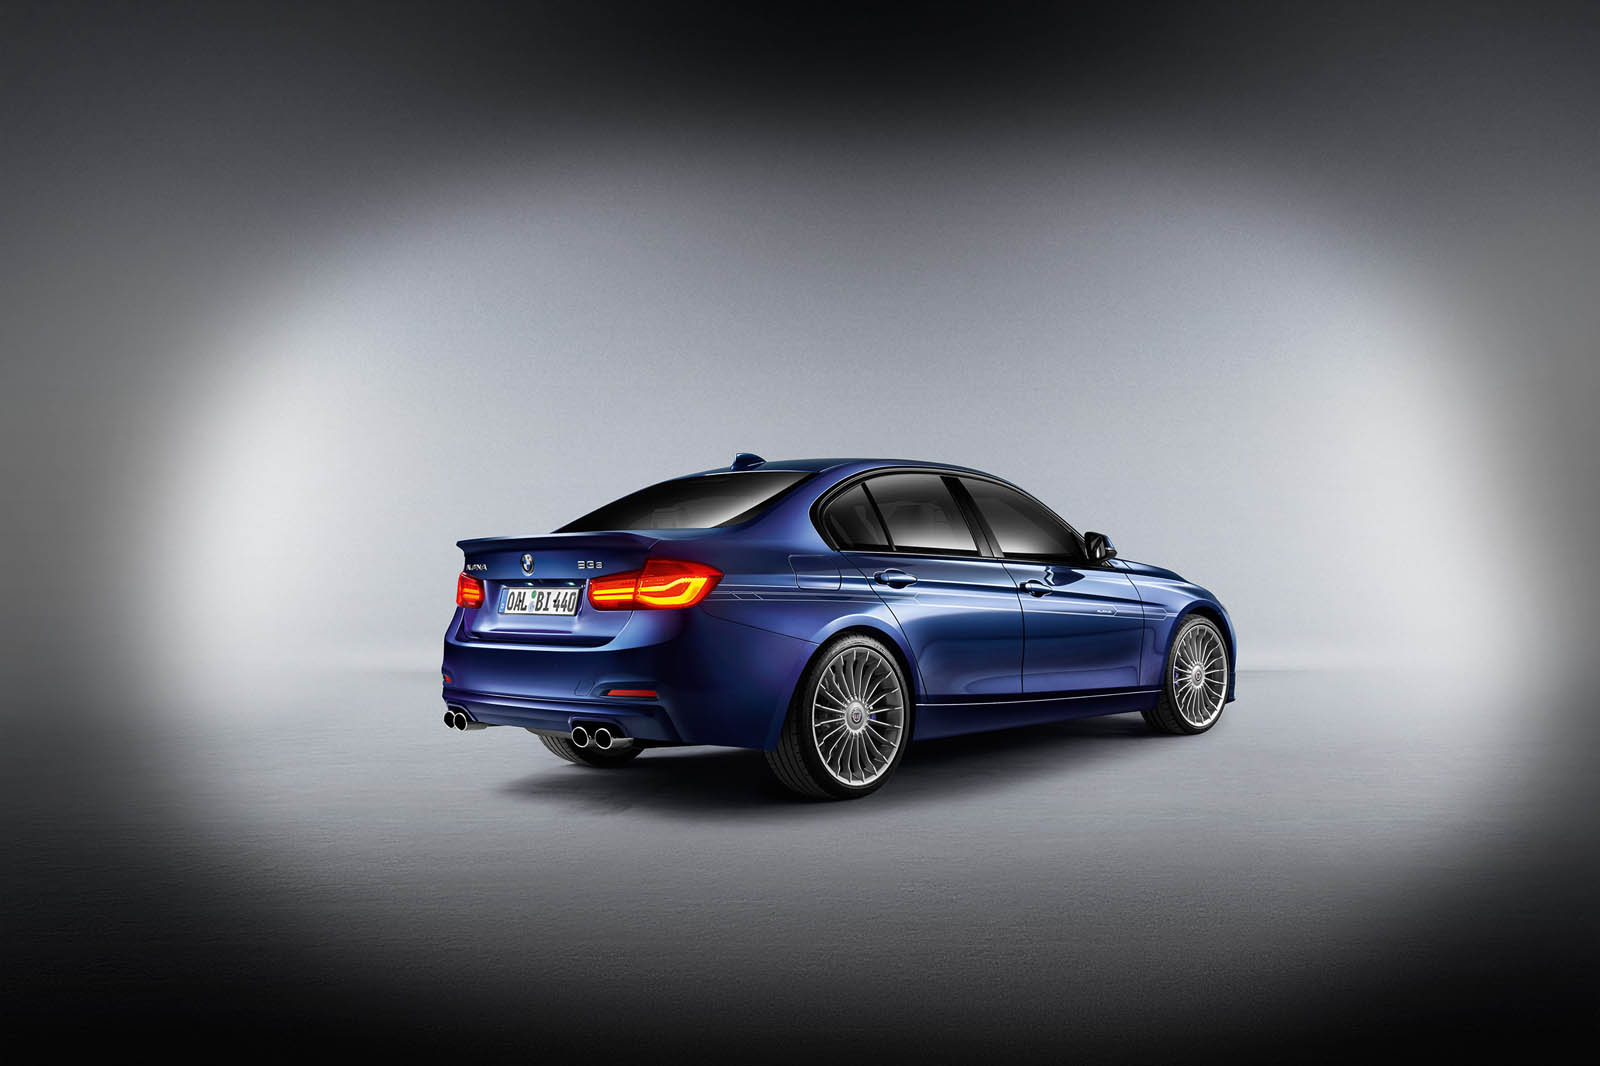 alpina 39 s latest b3 b4 s bi turbo outguns bmw m3 m4 with 434 hp carscoops. Black Bedroom Furniture Sets. Home Design Ideas